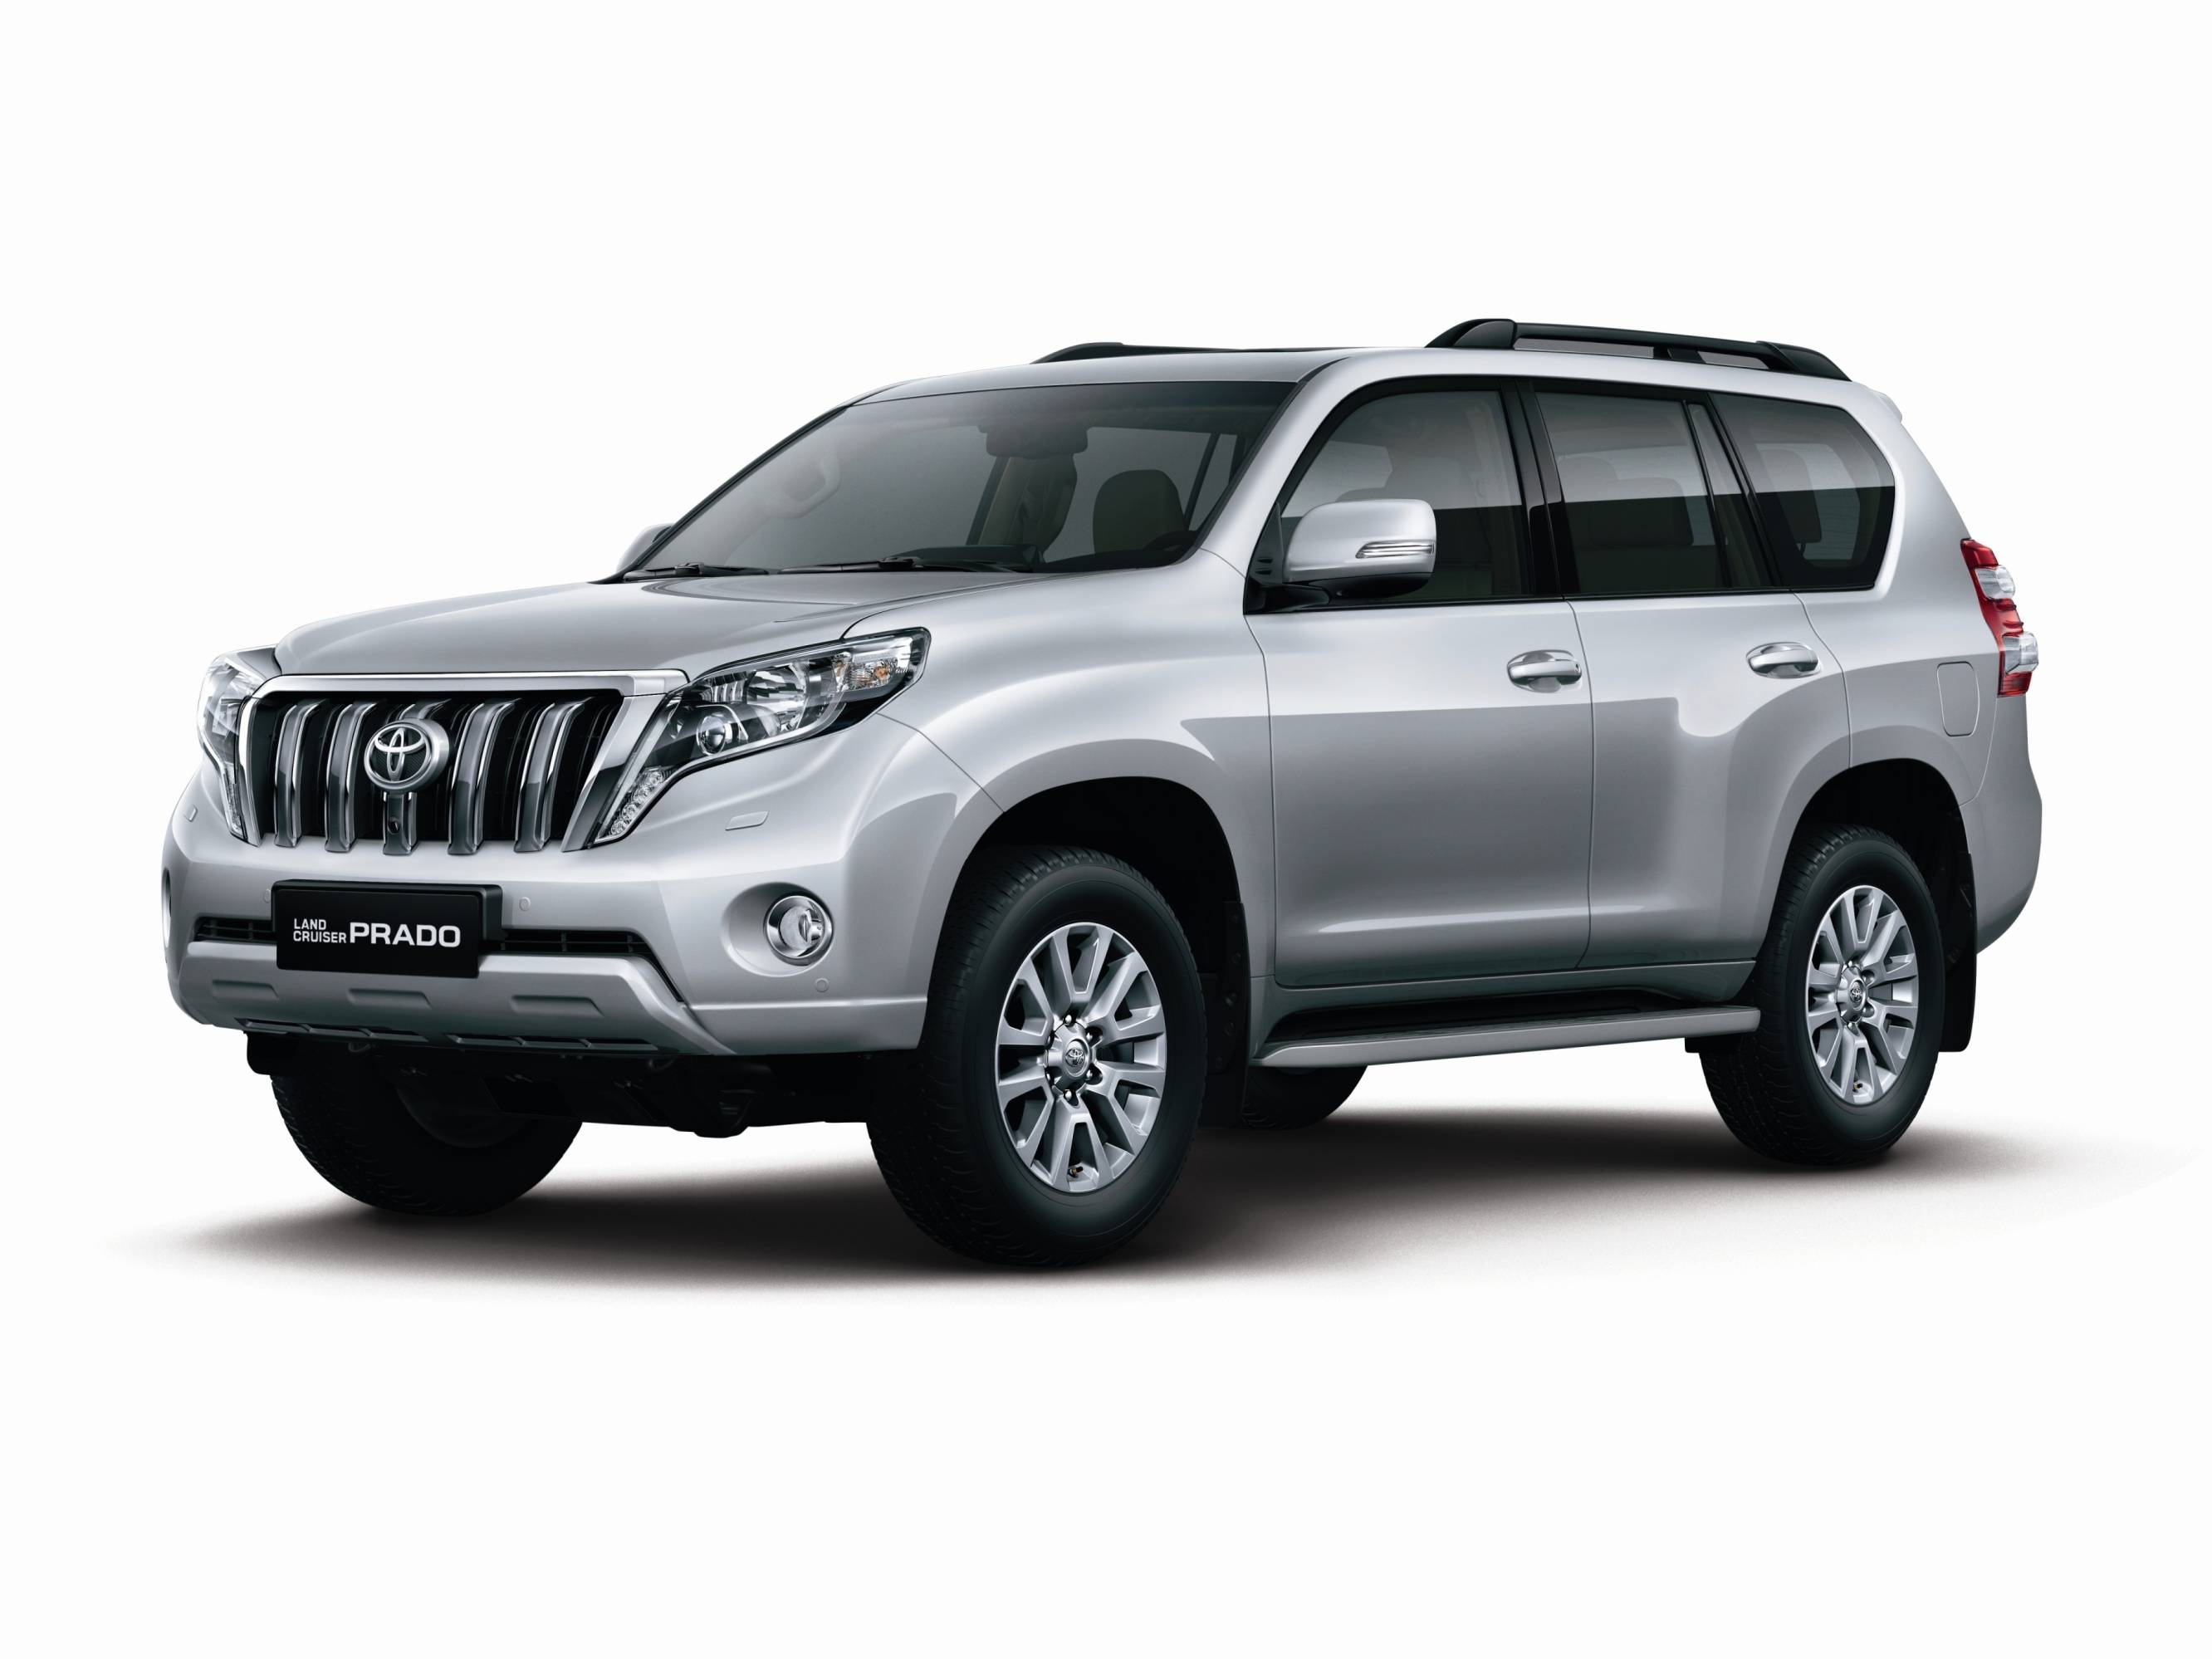 New 2014 Toyota Land Cruiser Prado launched in India, priced at Rs 84.87 lakh